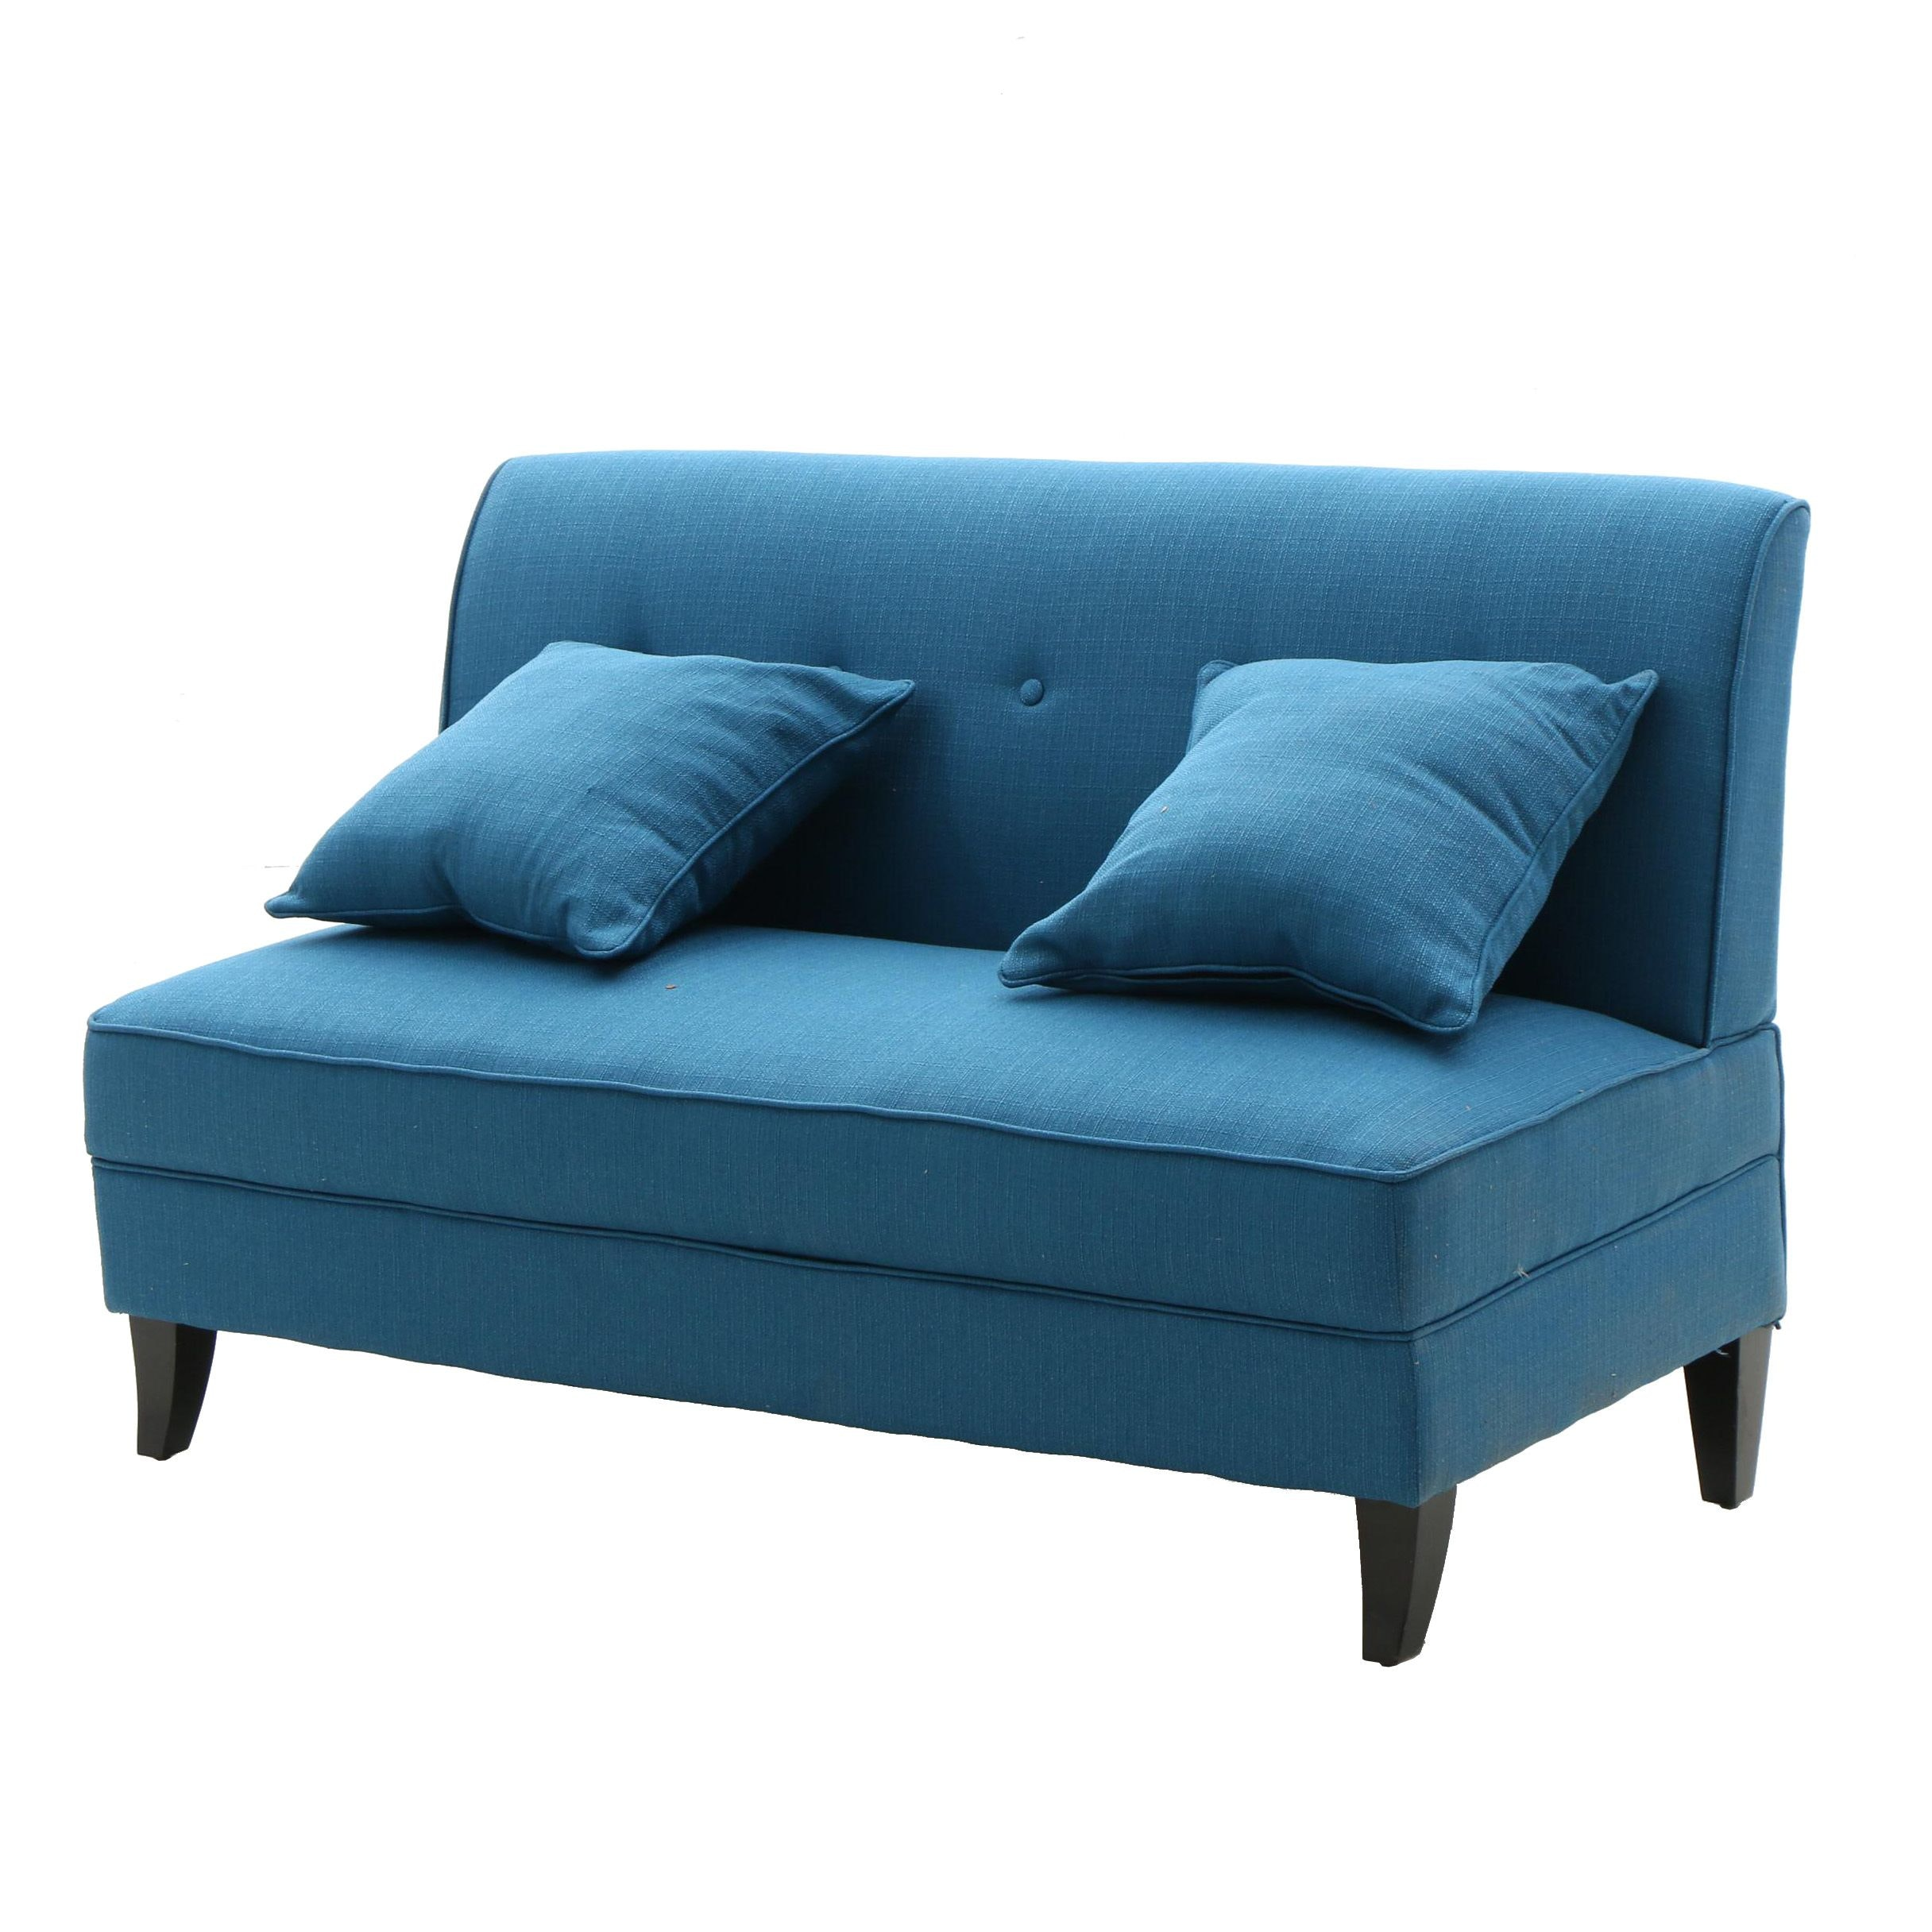 Upholstered Perseus Style Love Seat with Throw Pillows by Handy Living